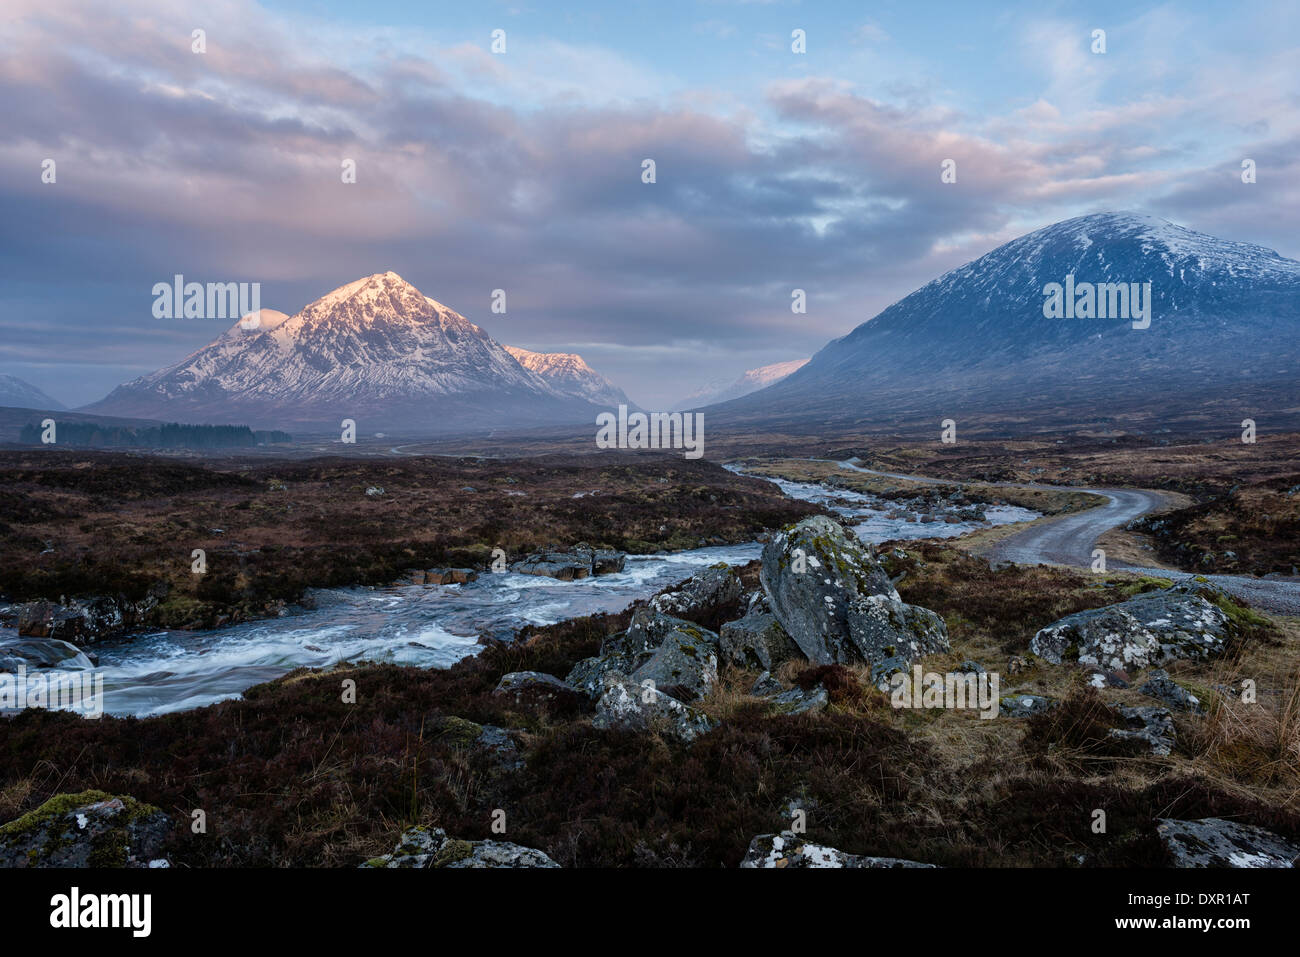 On Rannoch Moor  west of Glencoe looking towards the entrance to Glen Coe - Stock Image